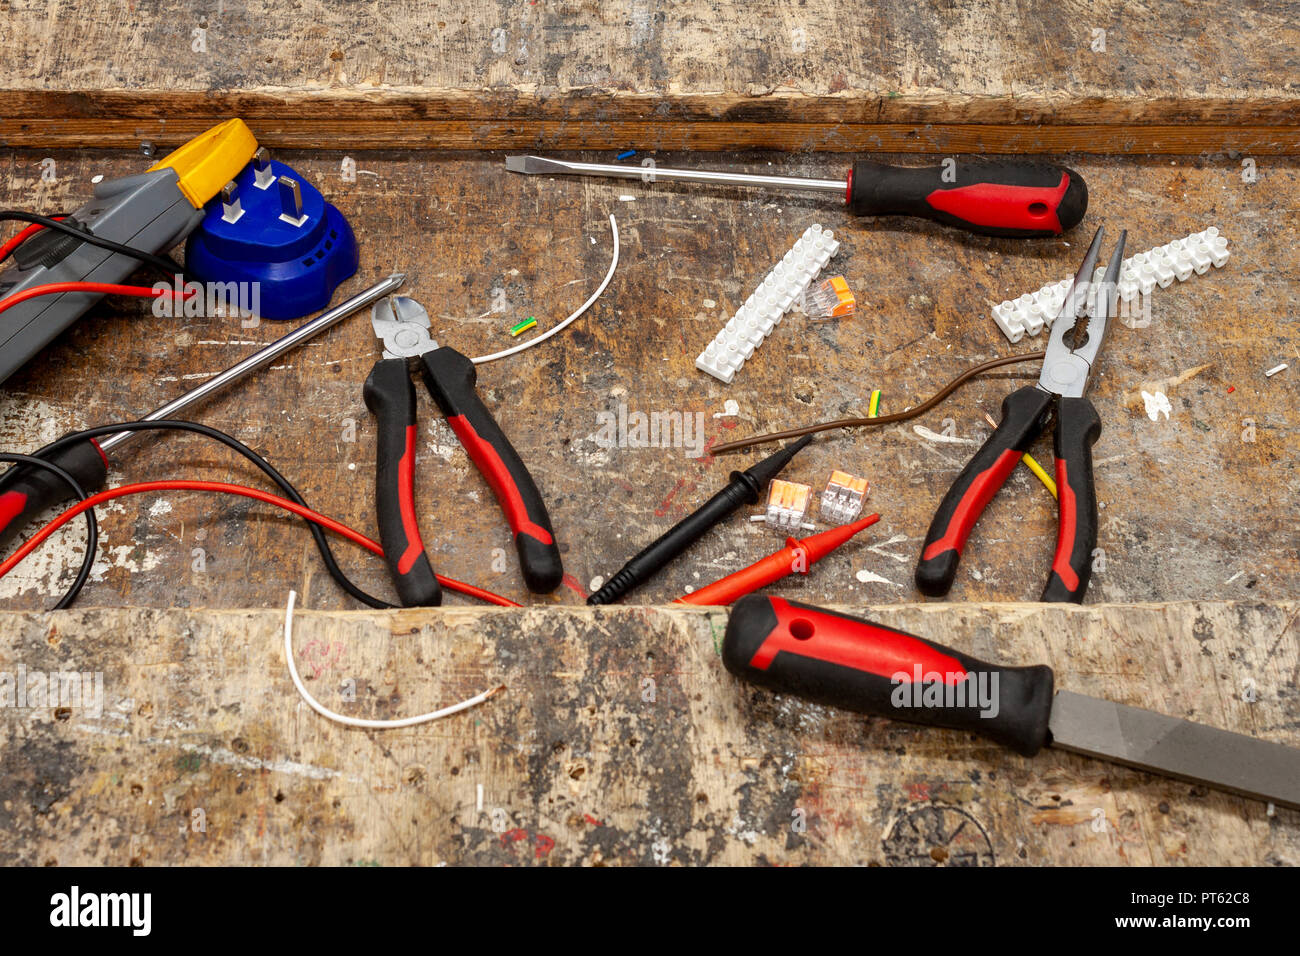 Long nose pliers and various electrical hand tools on an old wooden workbench with scraps of copper wire and connectors - Stock Image